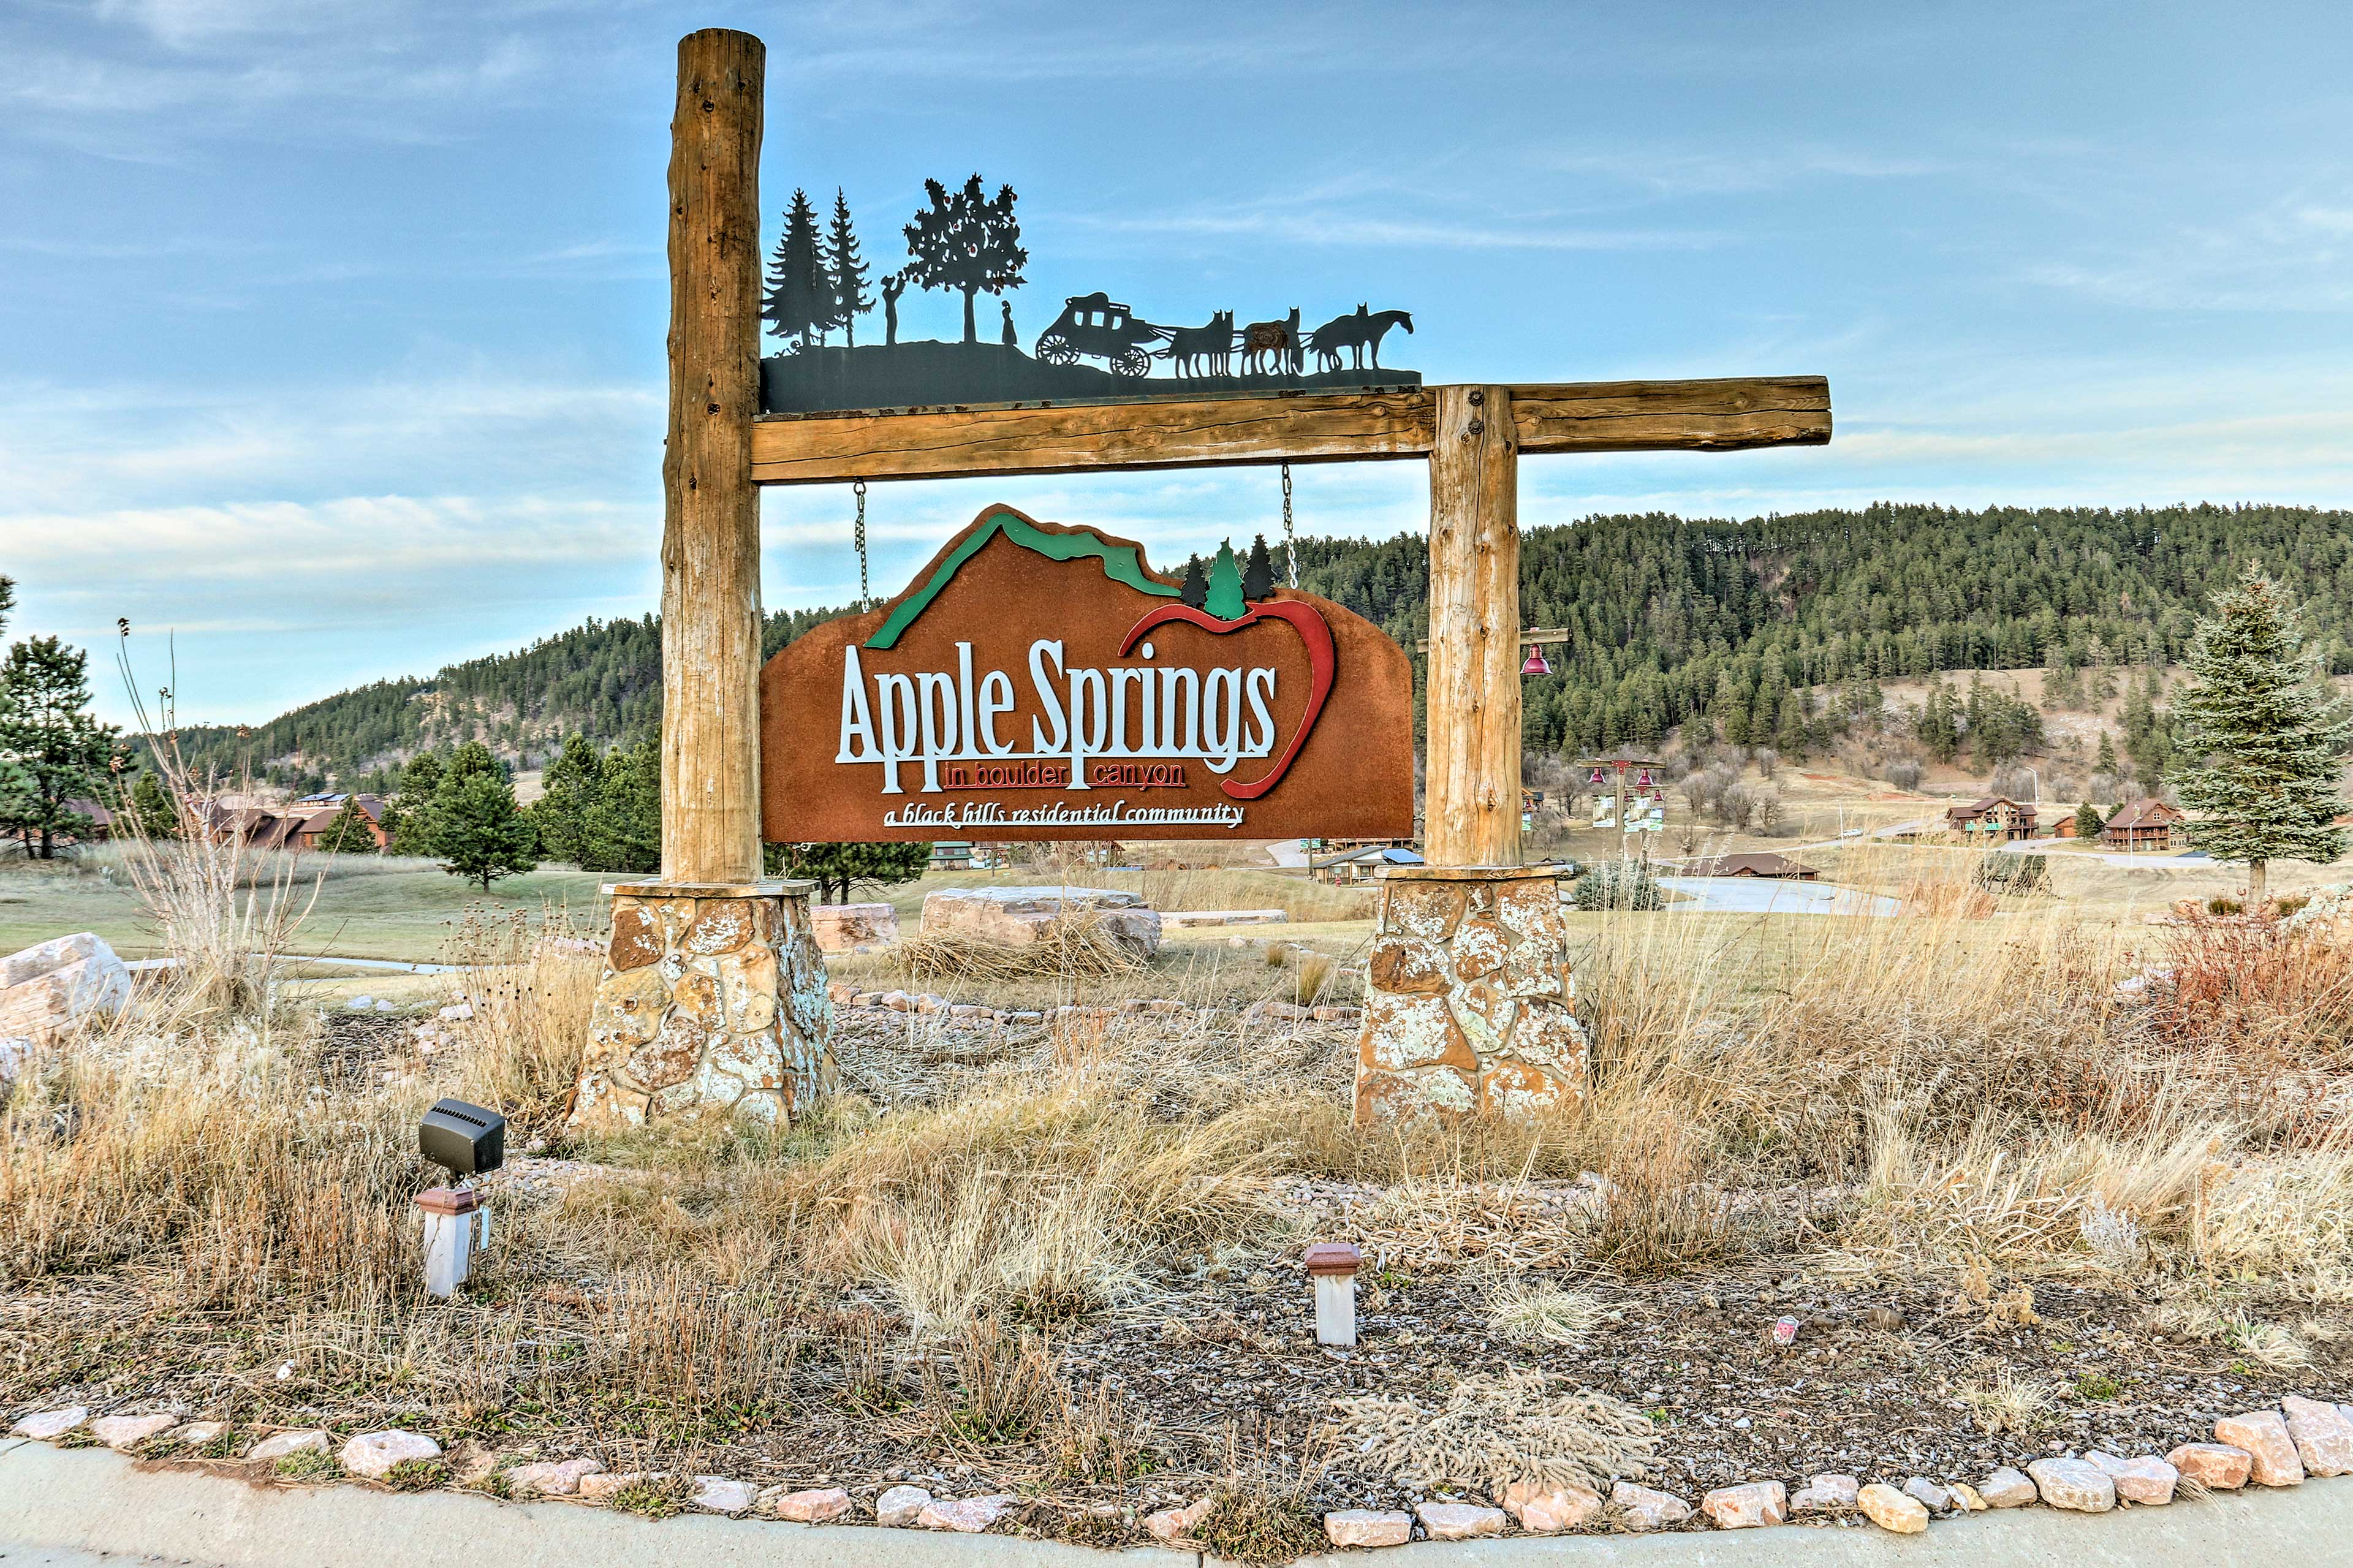 Apple Springs invites you to explore the Black Hills area!